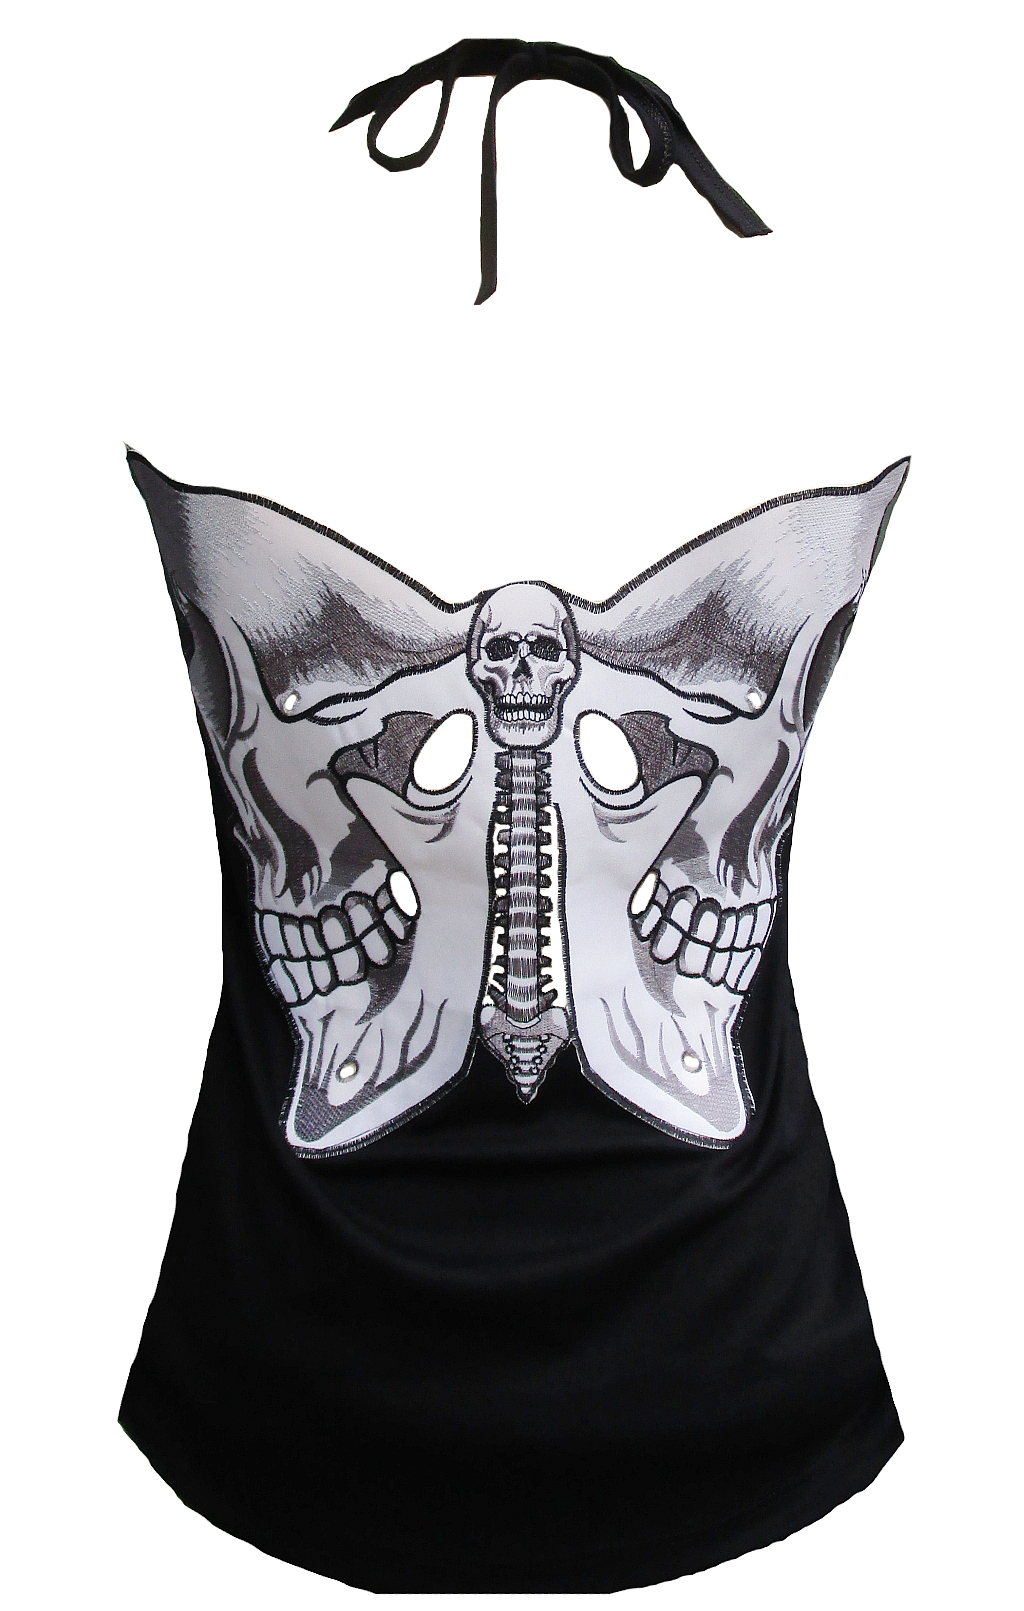 Rockabilly Punk Rock Baby Woman Black Tank Top Shirt Bat Butterfly Skull